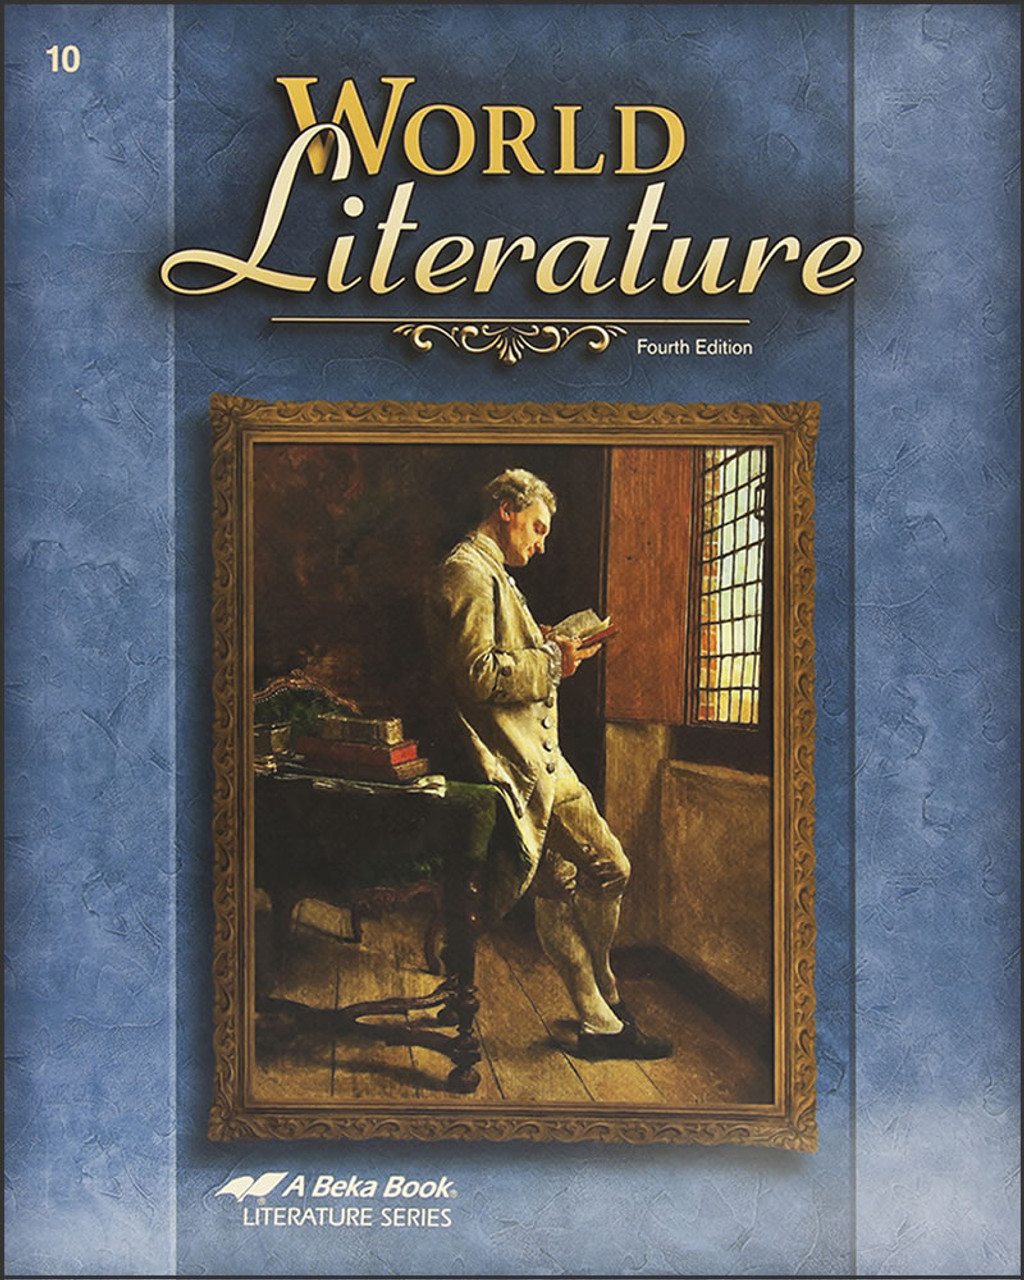 World Literature, 4th edition